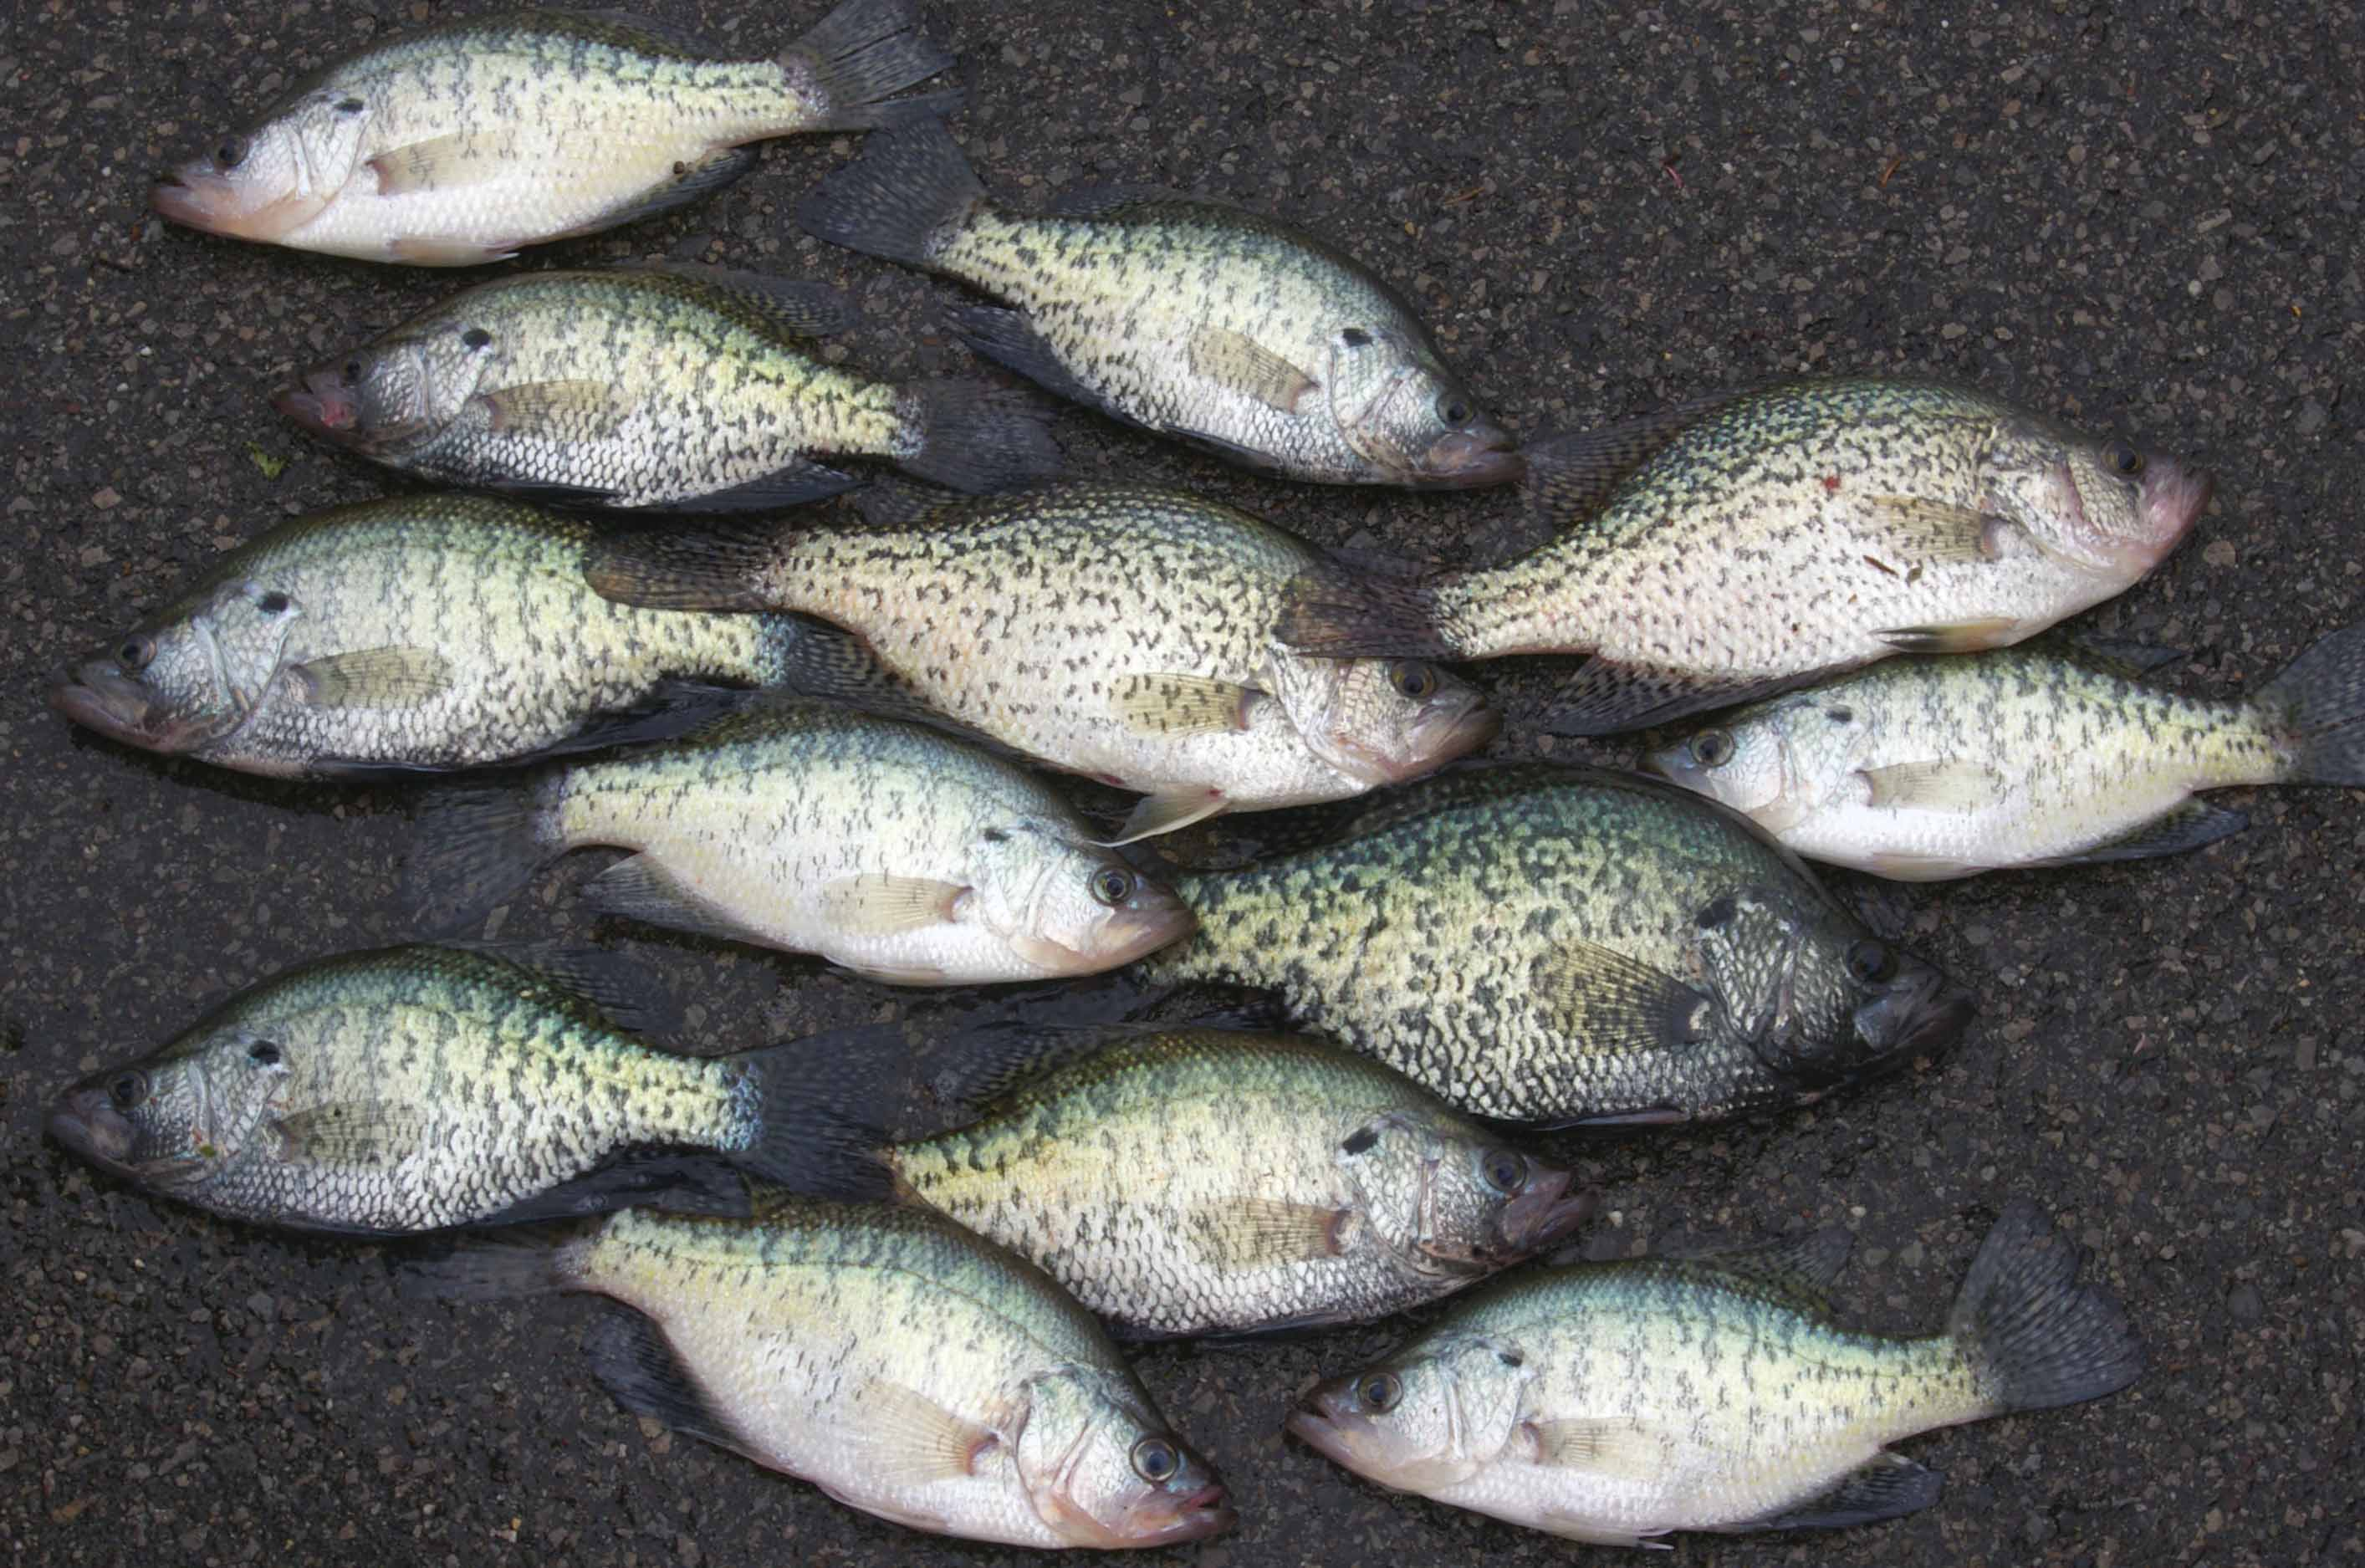 Crappie fishing can be exciting.